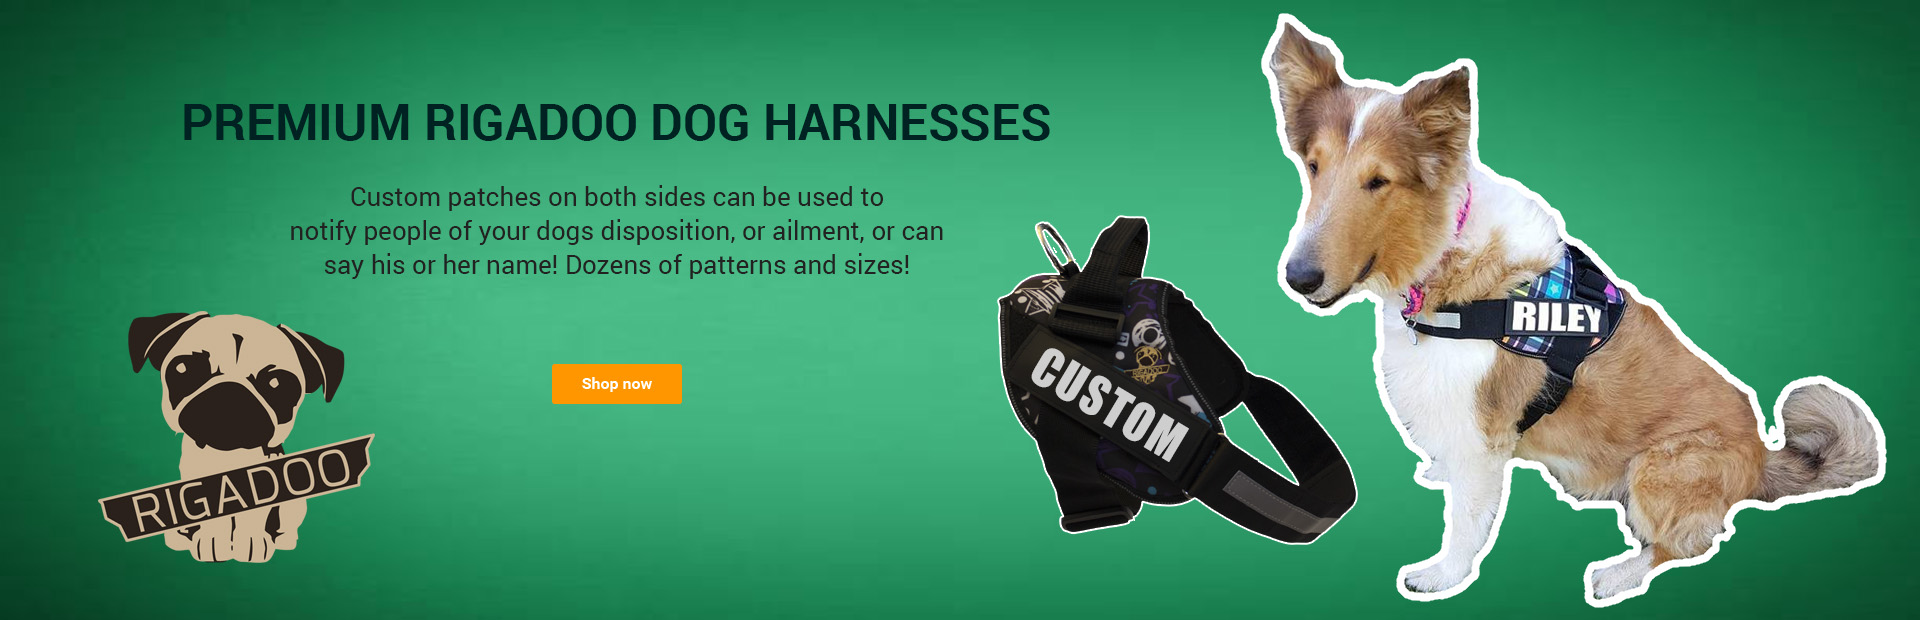 Rigadoo Custom Dog Harness